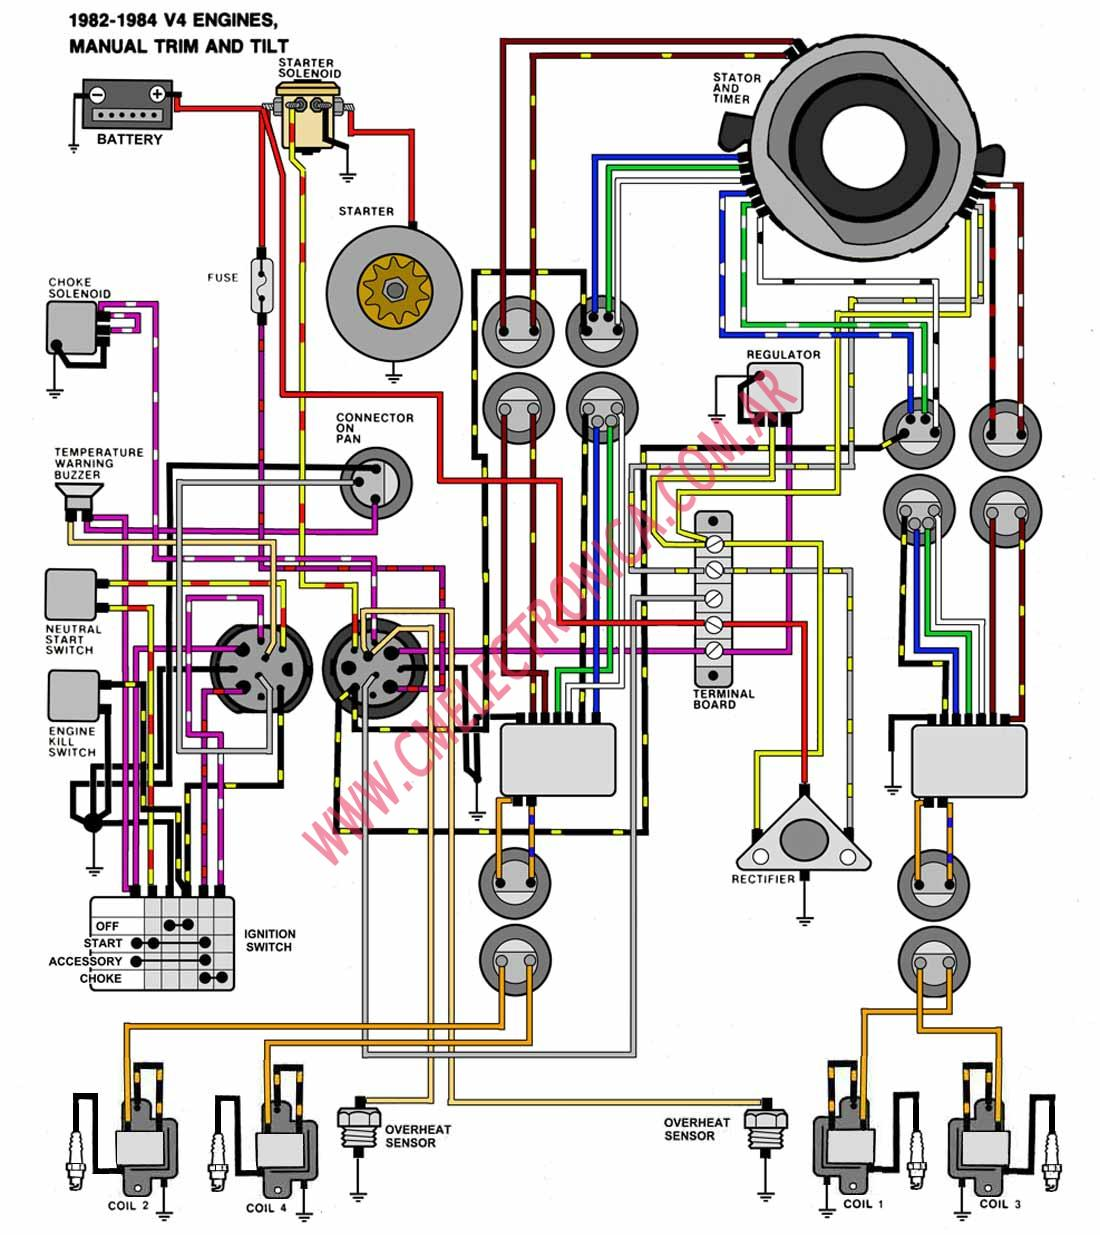 Sea Doo Spark Plug Wiring Diagram Simple Guide About Explorer Fuse Box 1997 Get Free Image